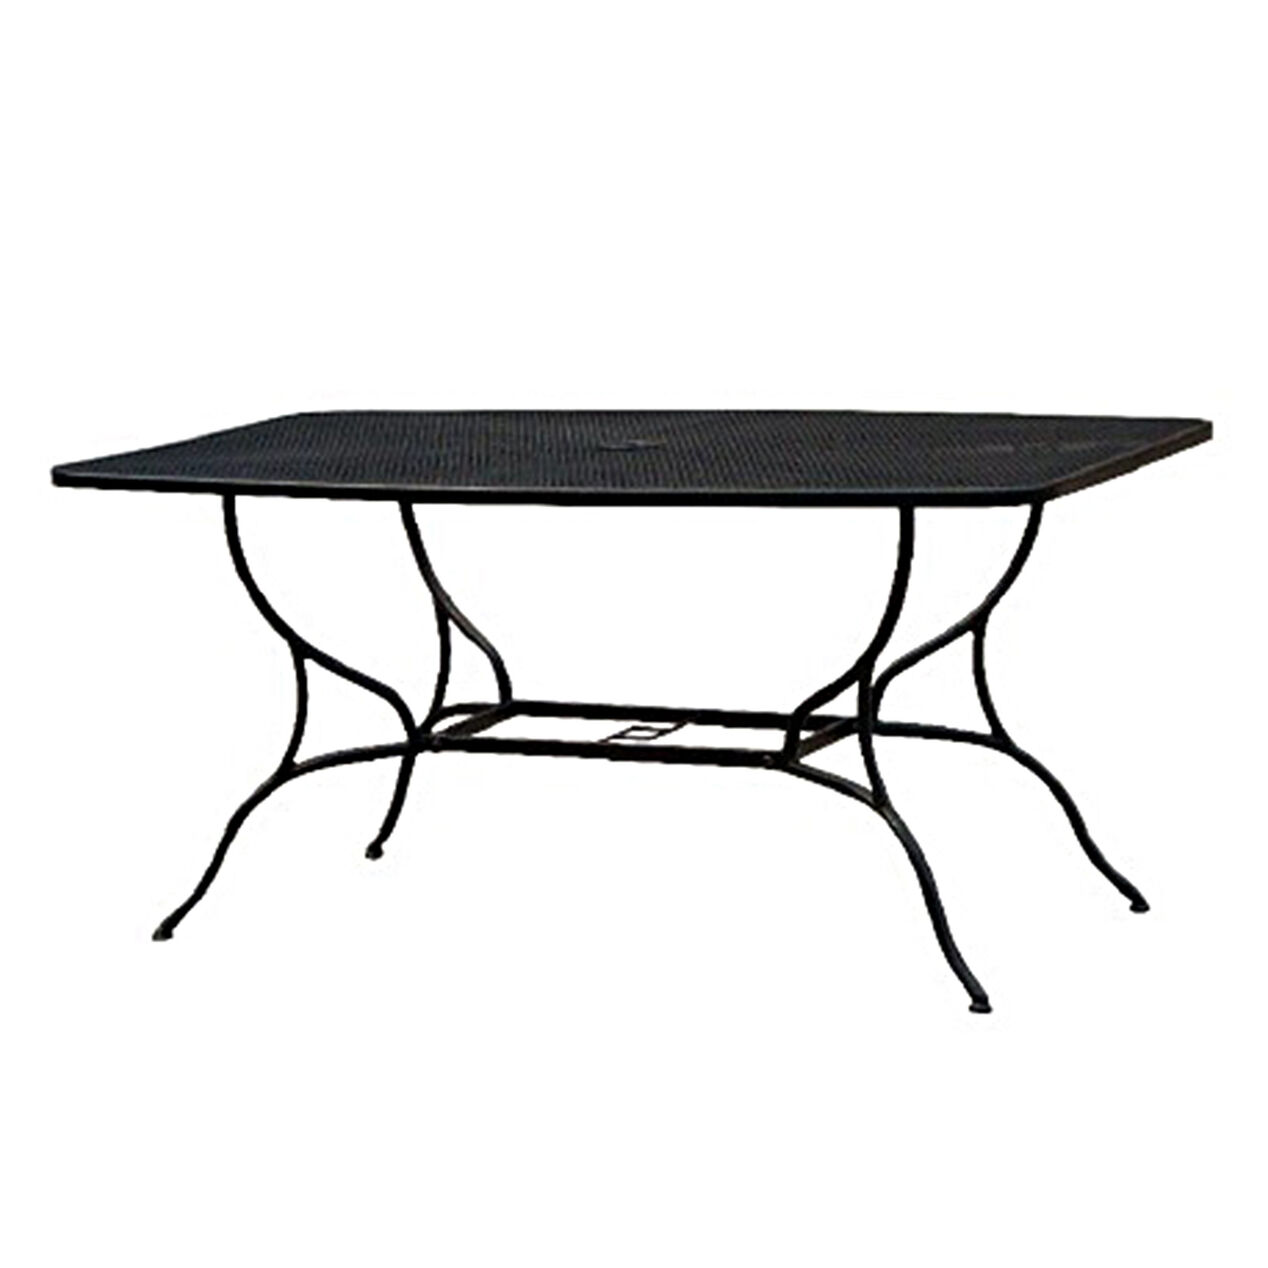 black wrought iron patio outdoor table 38 x 60 black wrought iron table